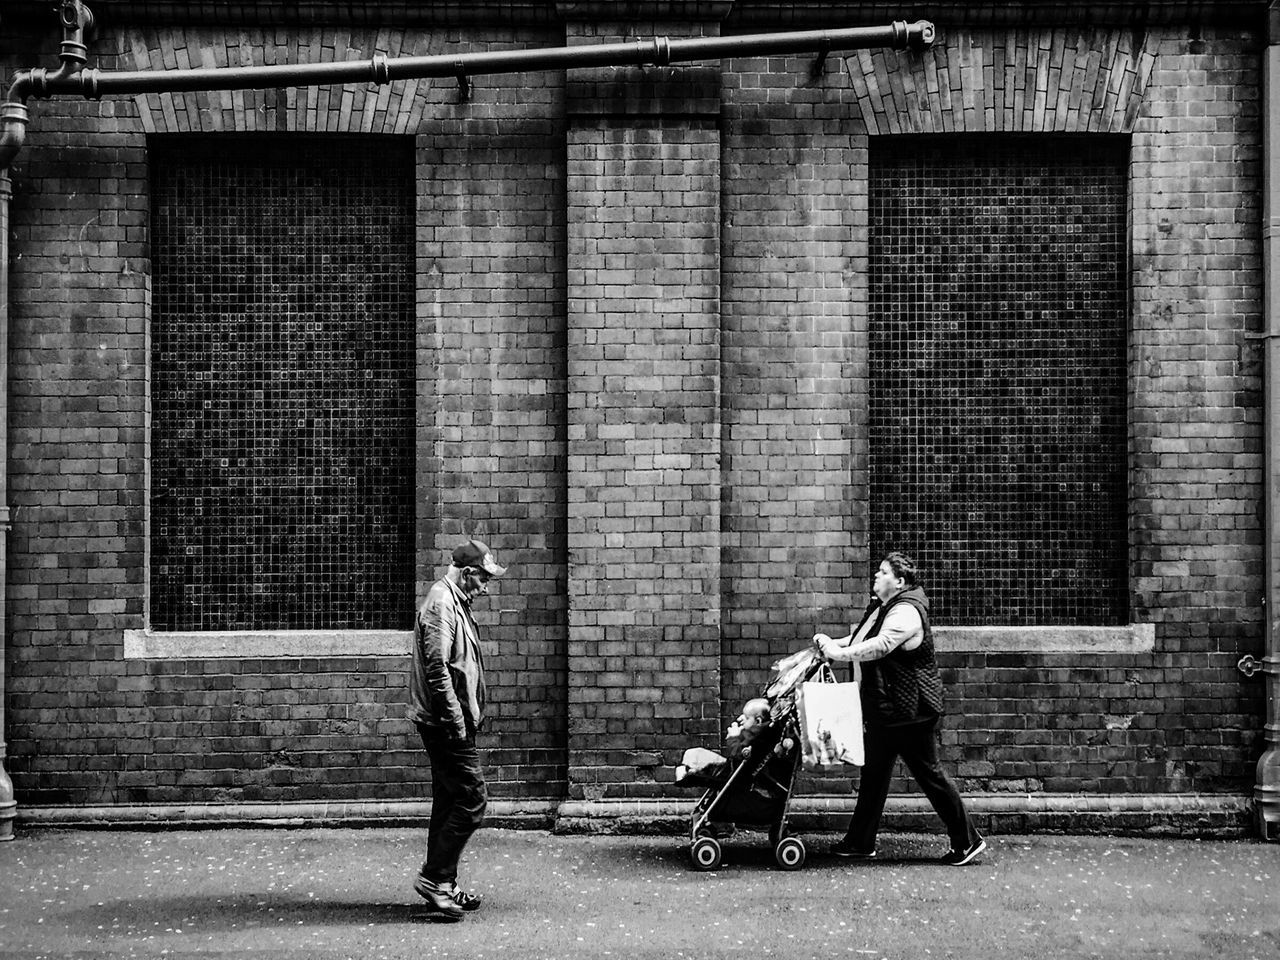 full length, two people, real people, architecture, building exterior, built structure, walking, day, brick wall, outdoors, men, togetherness, lifestyles, childhood, adult, people